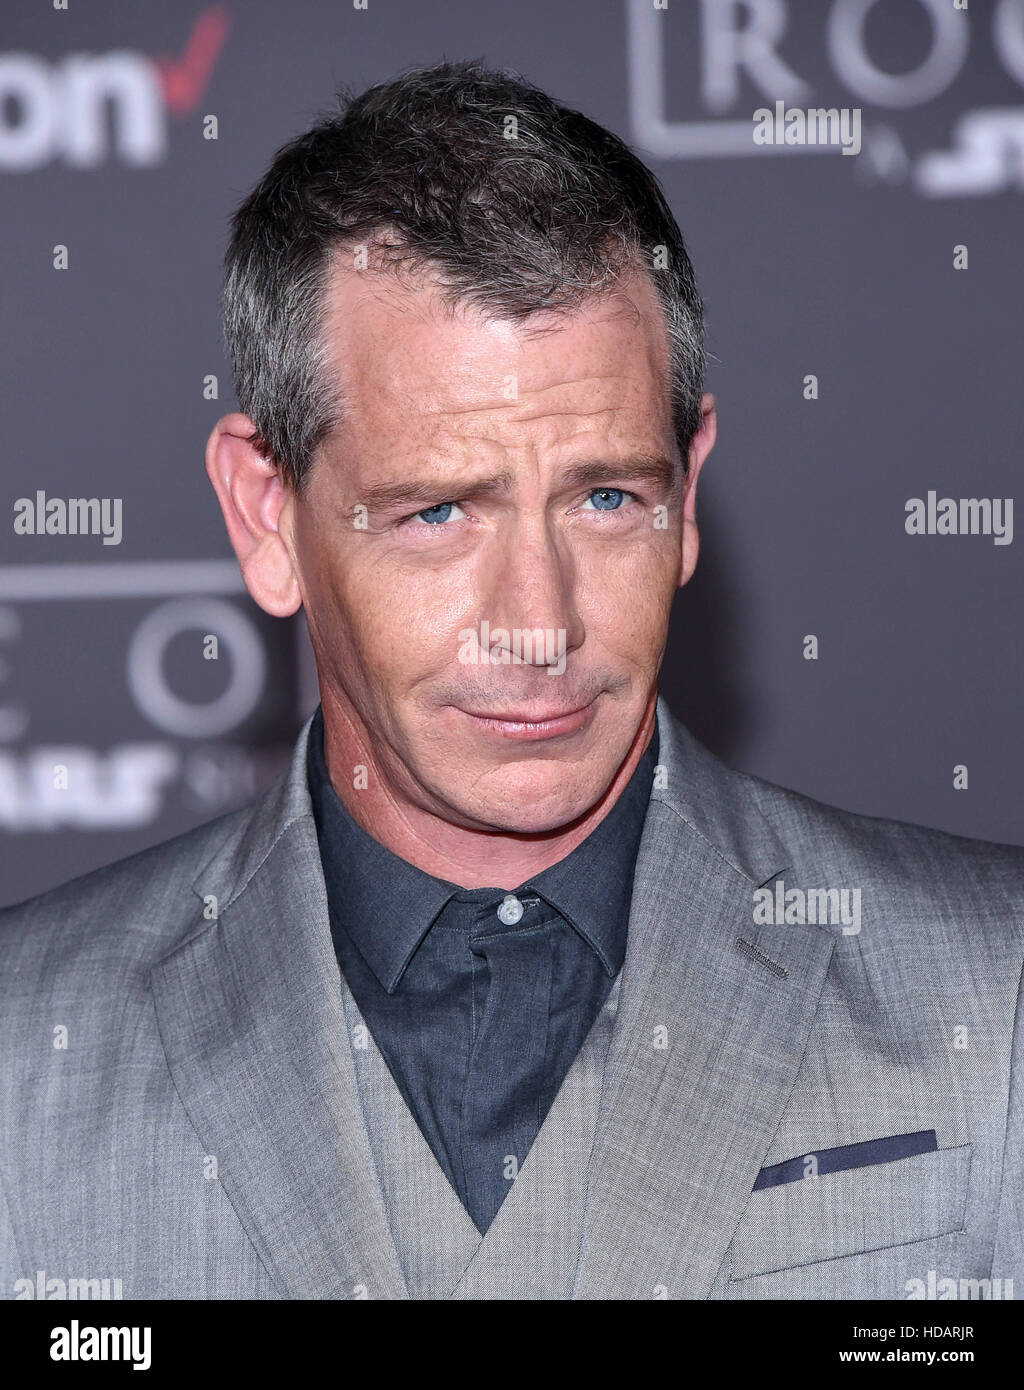 Hollywood, California, USA. 11th Dec, 2016. Ben Mendelsohn arrives for the premiere of the film 'Rogue One: - Stock Image